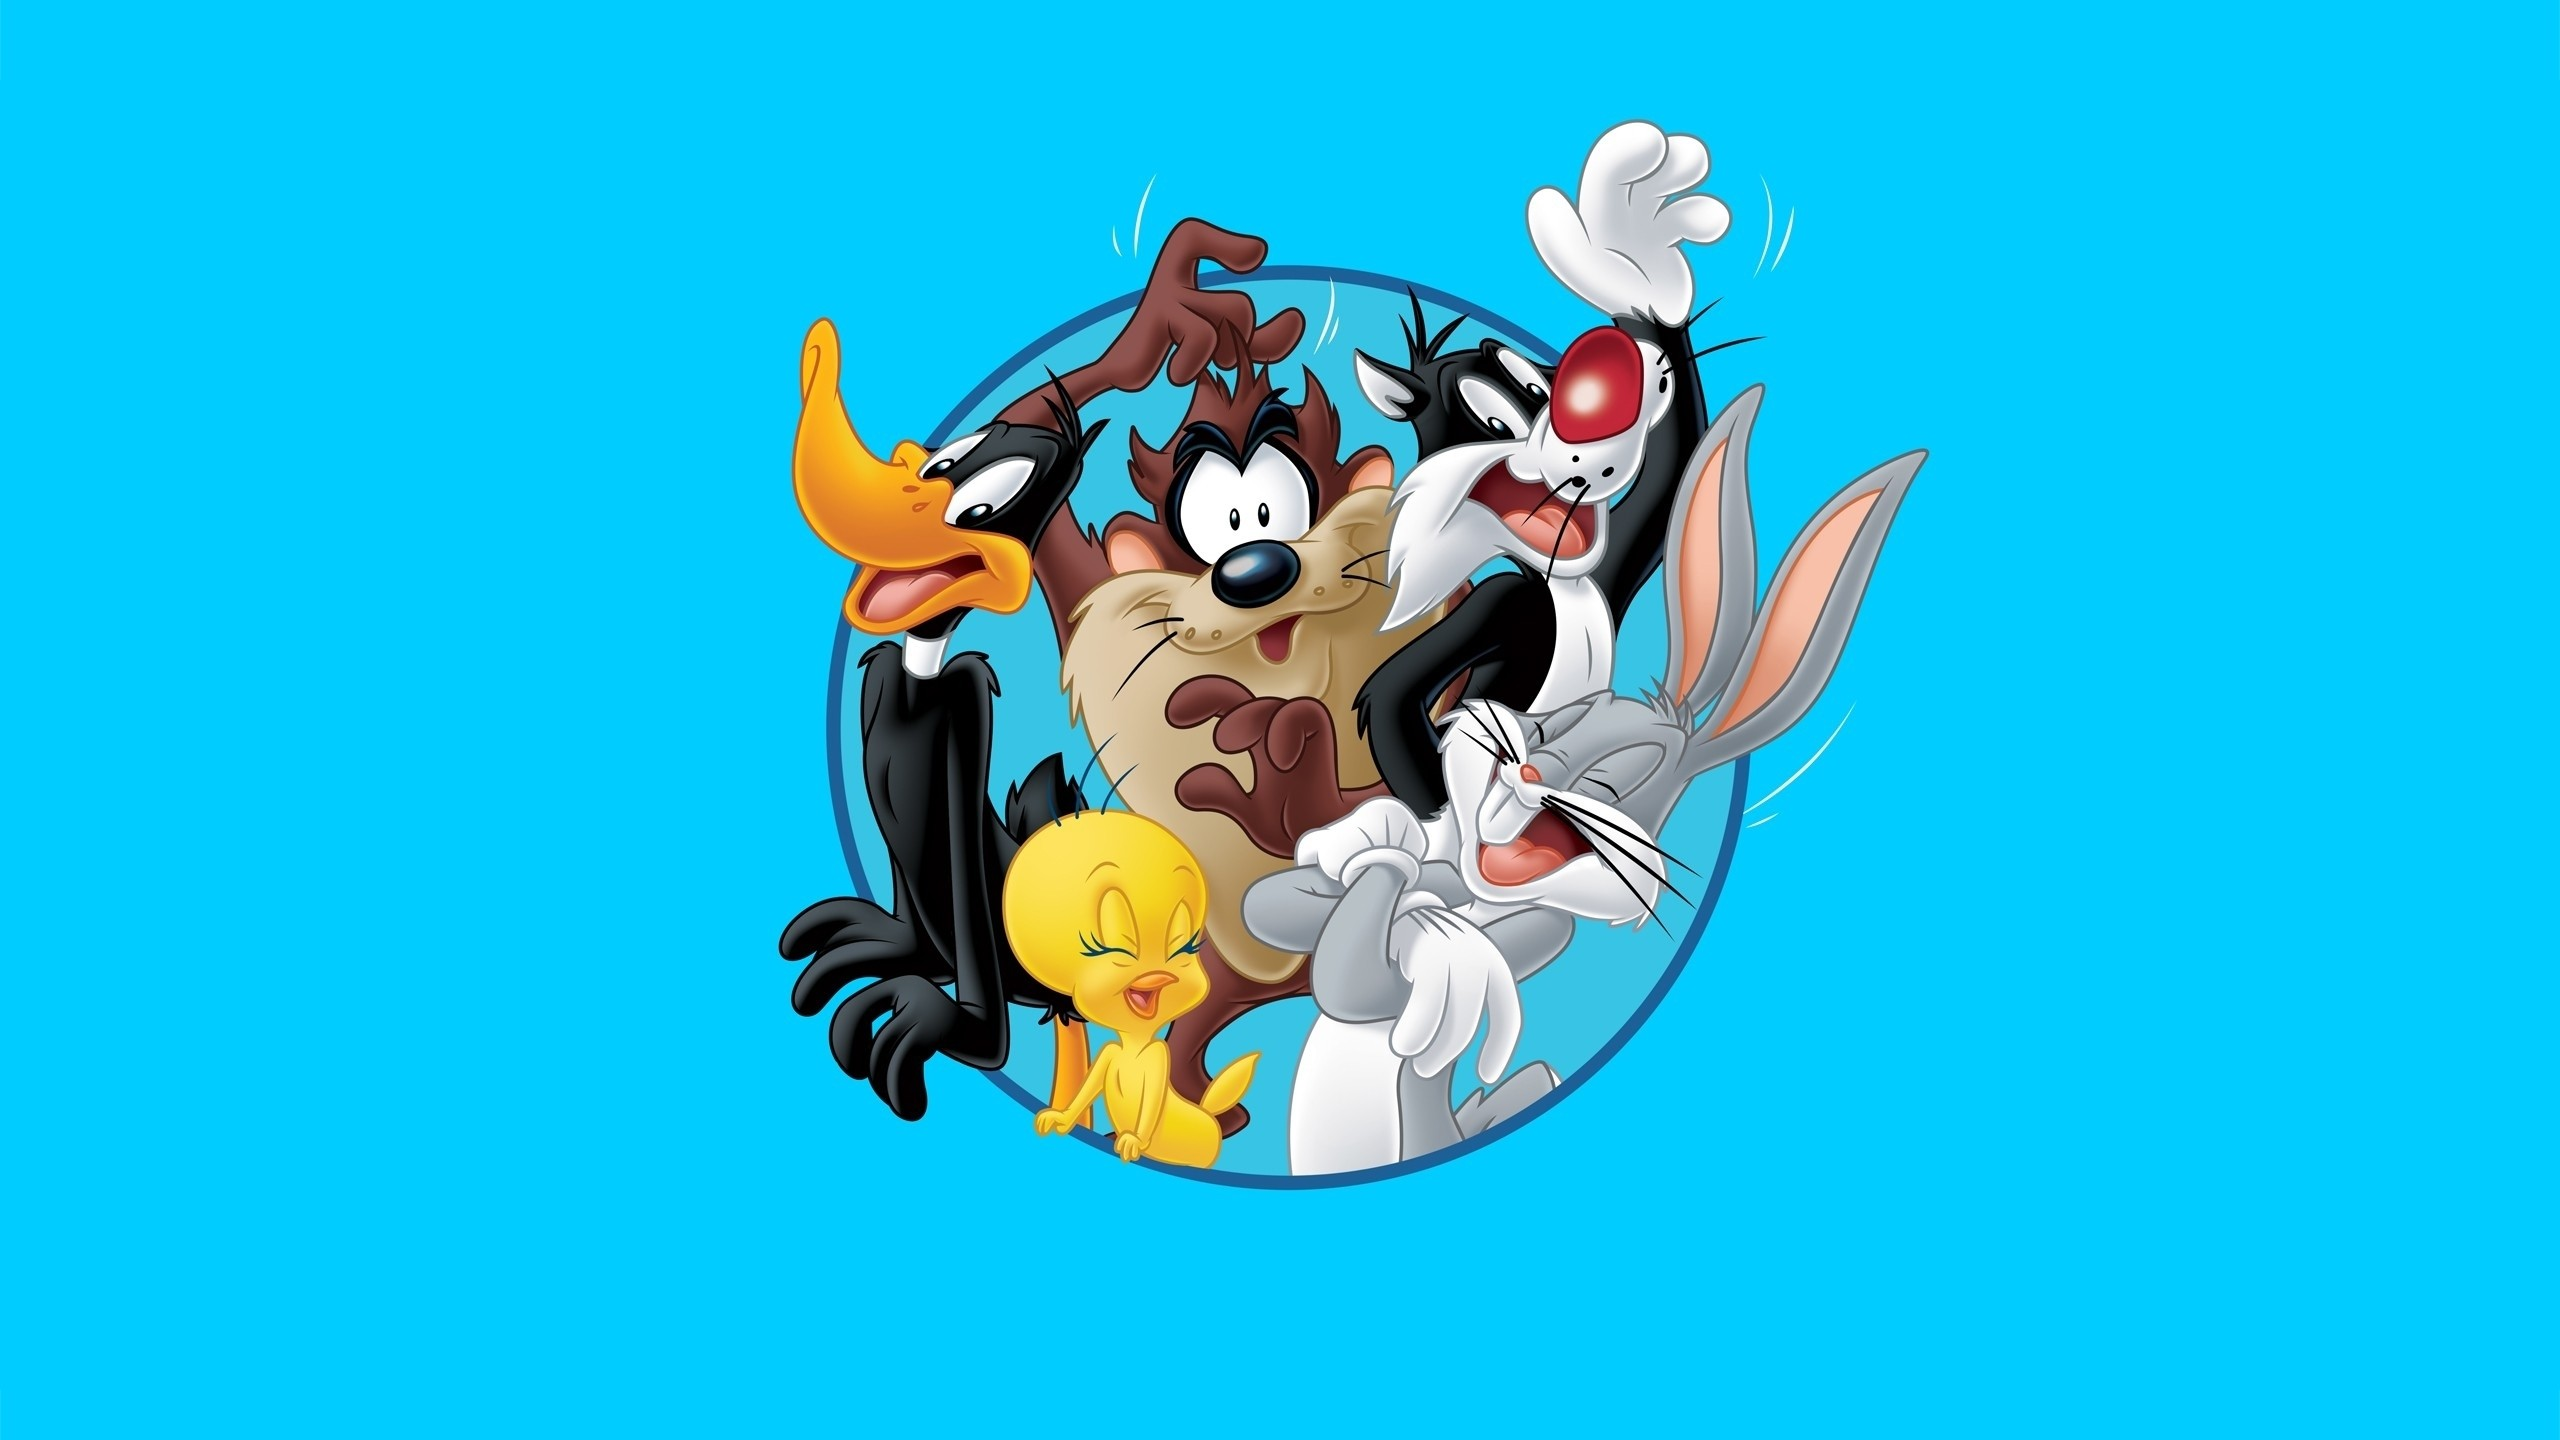 Daffy Duck Wallpaper 54 Images